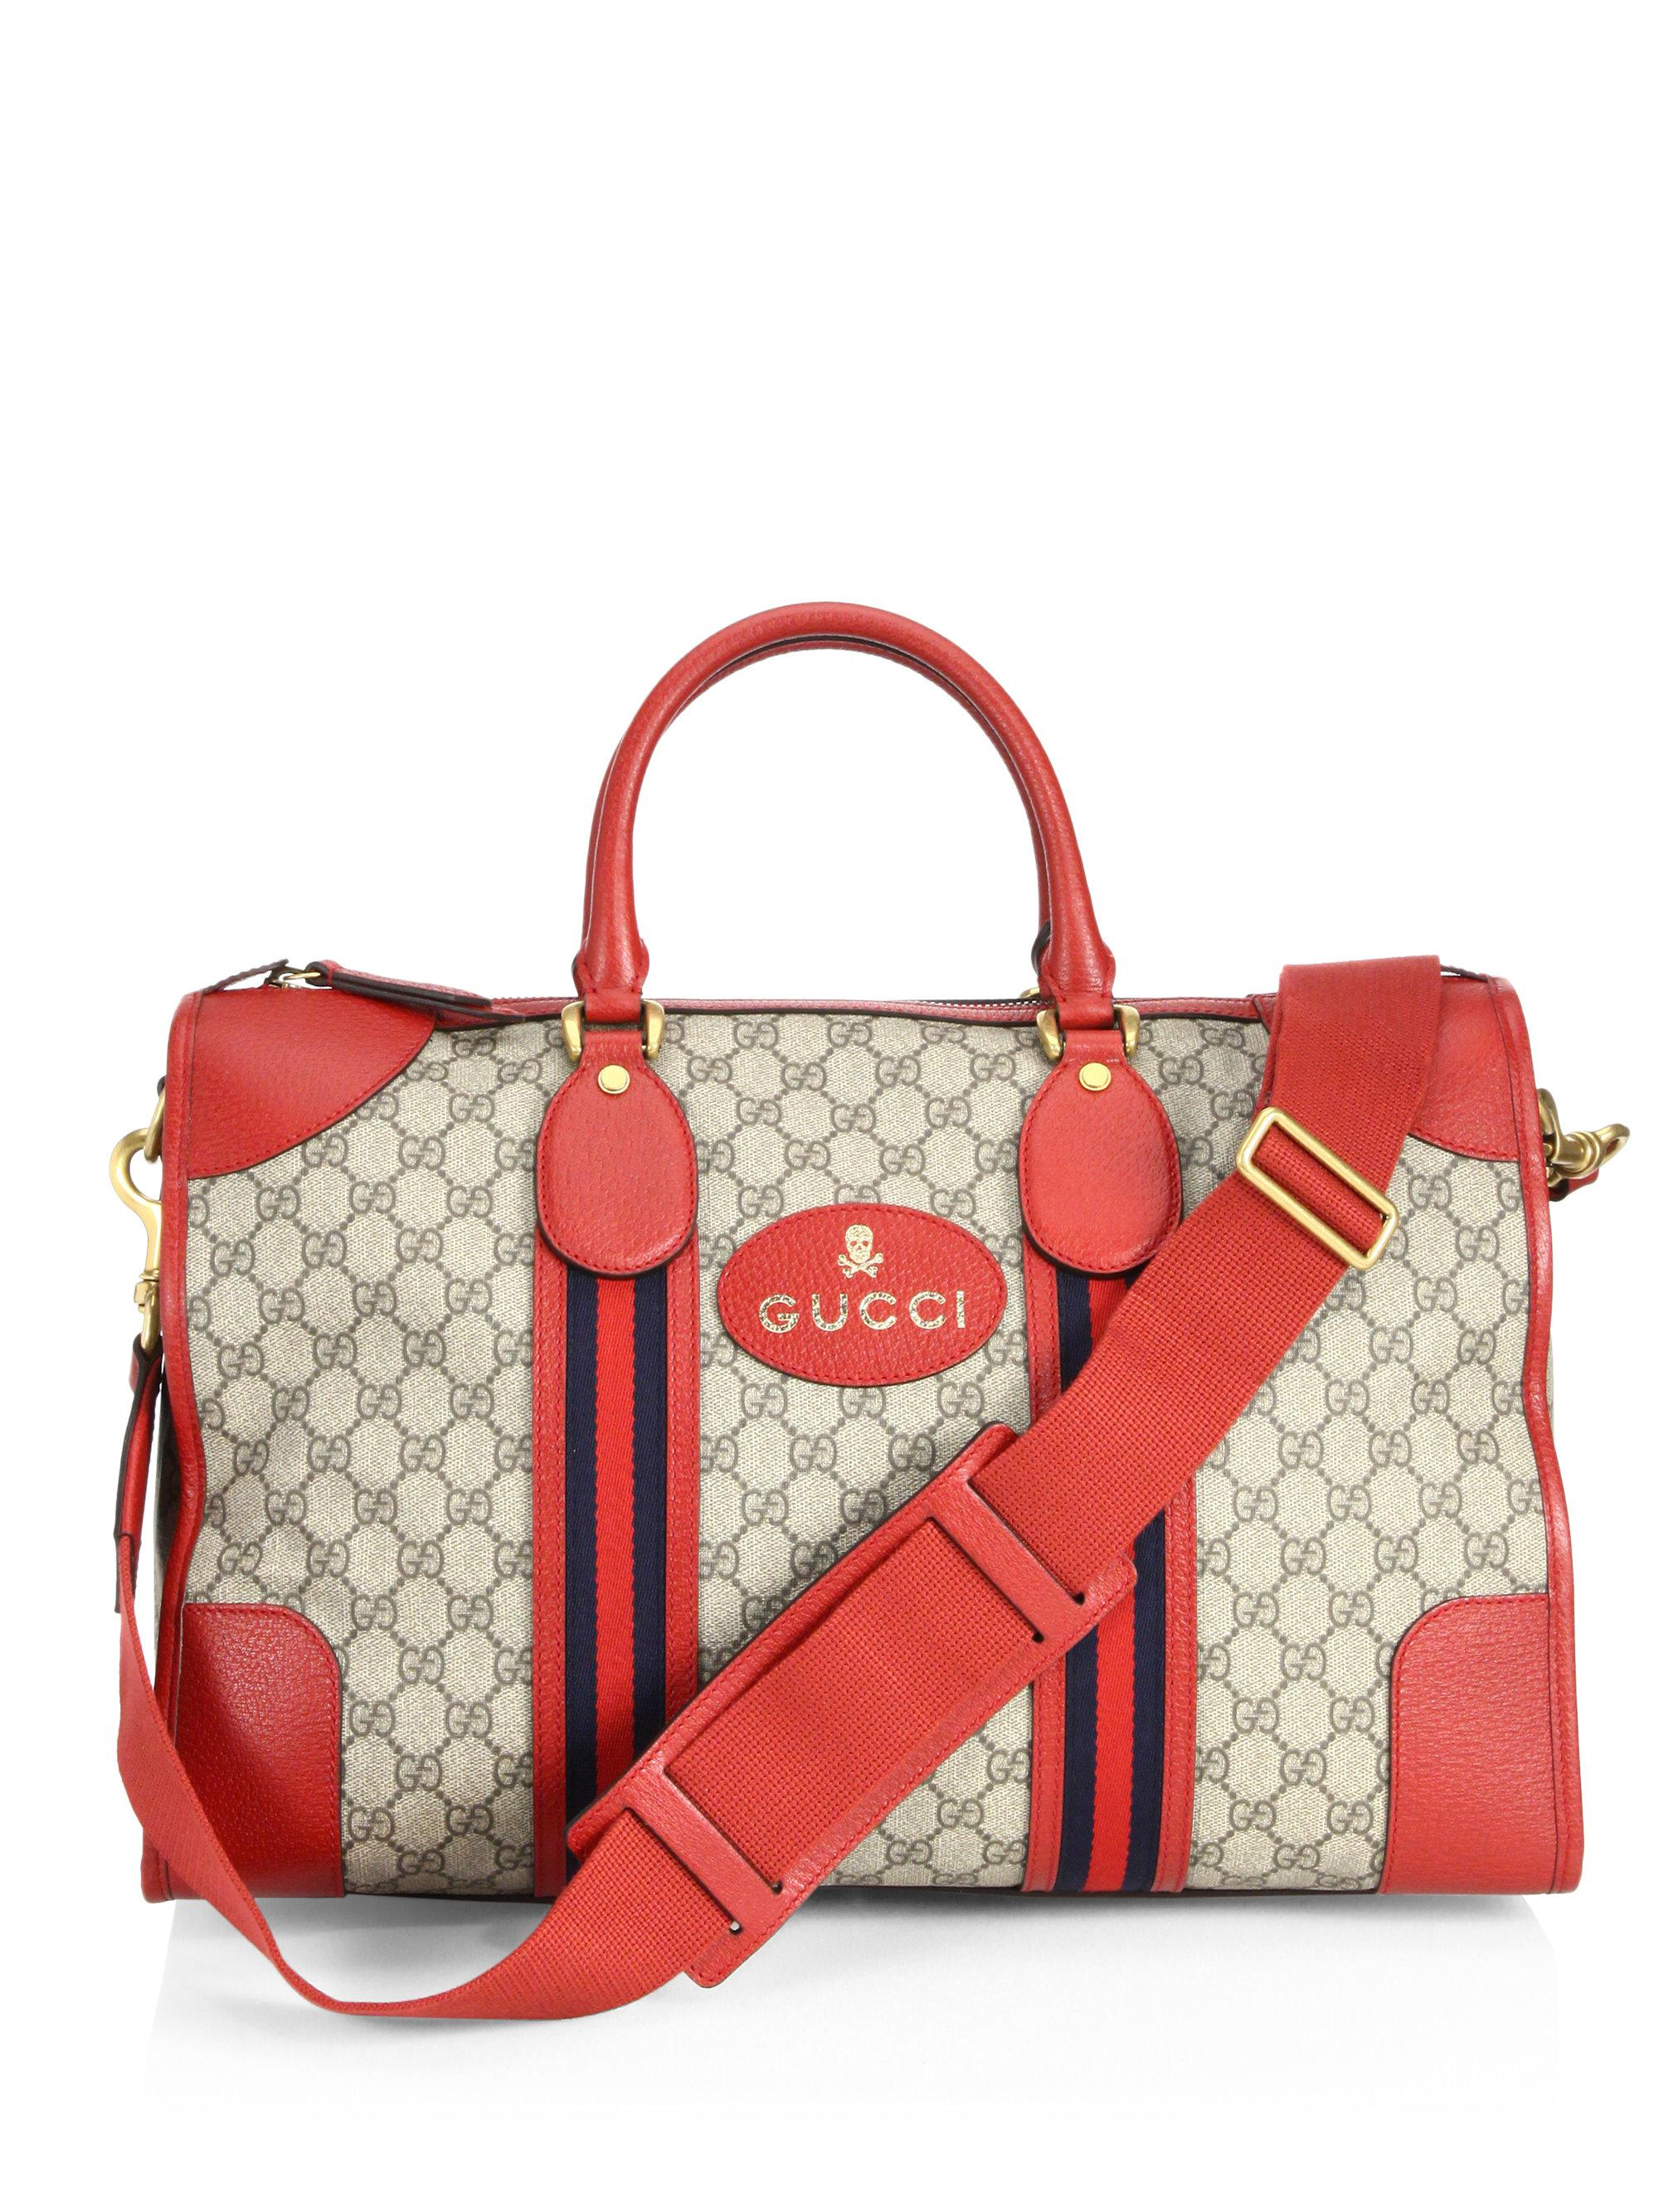 a1d17227d943 Gucci Soft Gg Supreme Web-detail Duffle Bag in Red - Lyst